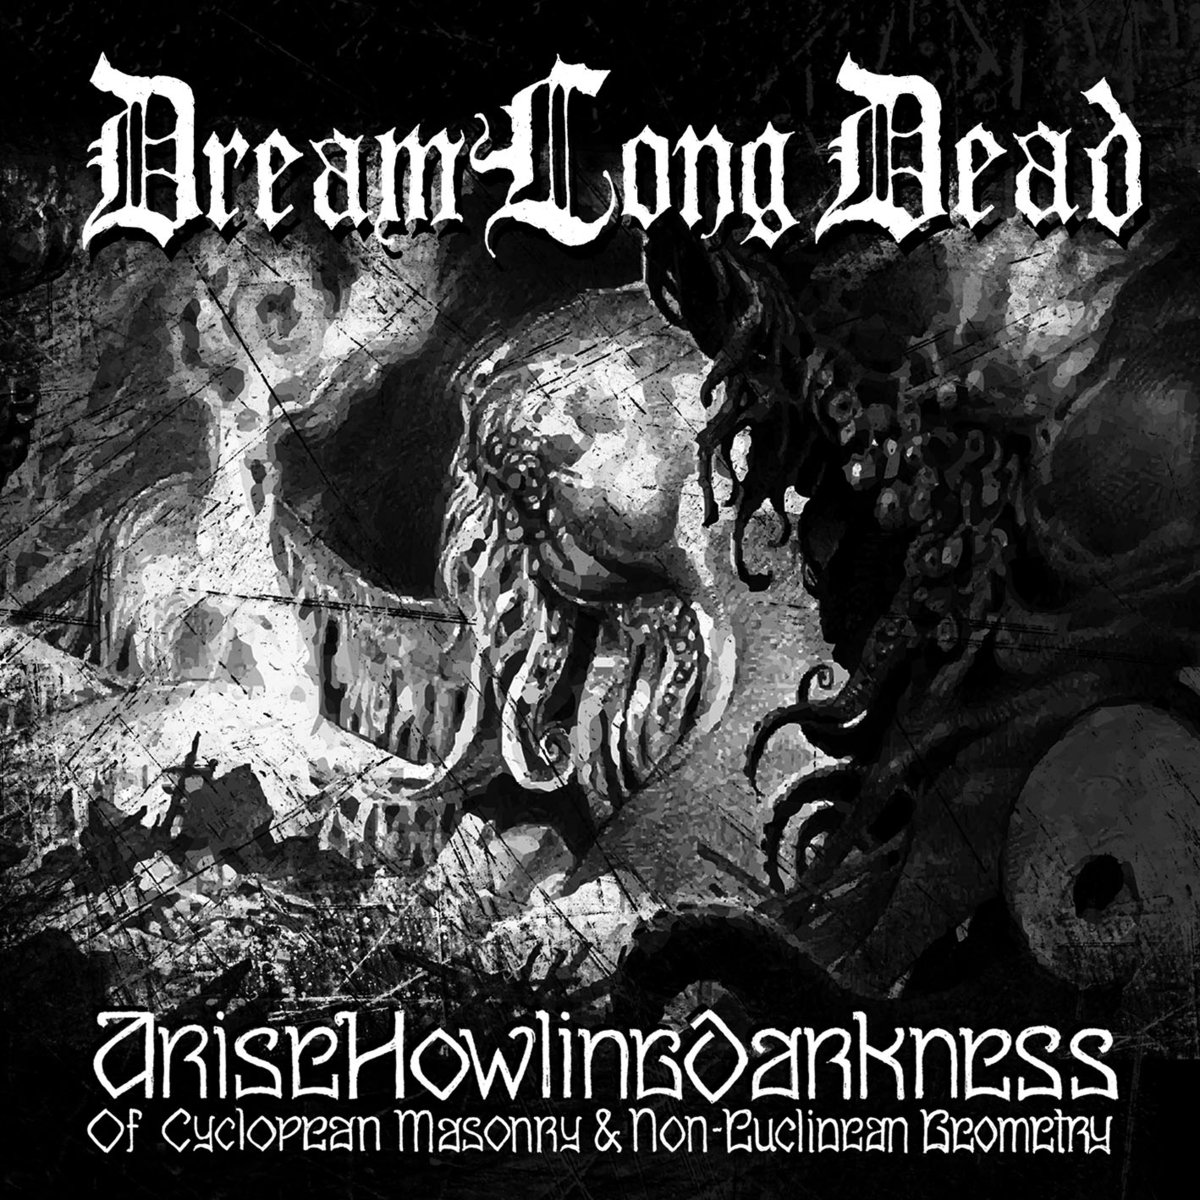 DreamLongDead – AriseHowlingDarkness: Of Cyclopean Masonry & Non-Euclidean Geometry